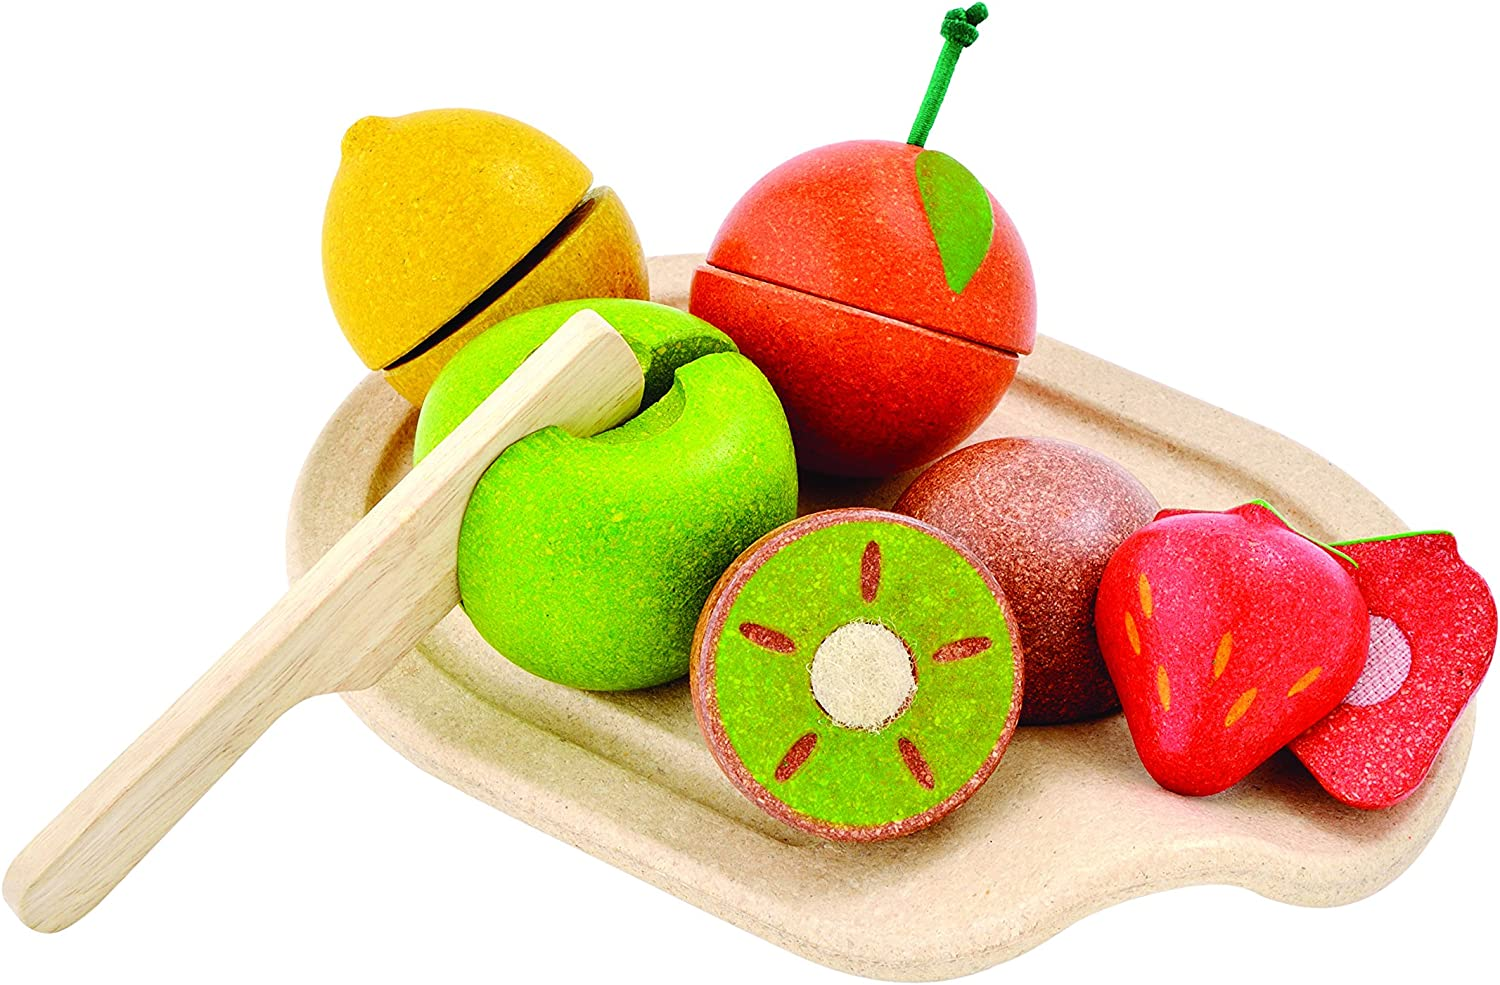 PlanToys 7 Piece Assorted Fruit Kitchen Food Playset (3600) | Sustainably Made from Rubberwood and Non-Toxic Paints and Dyes